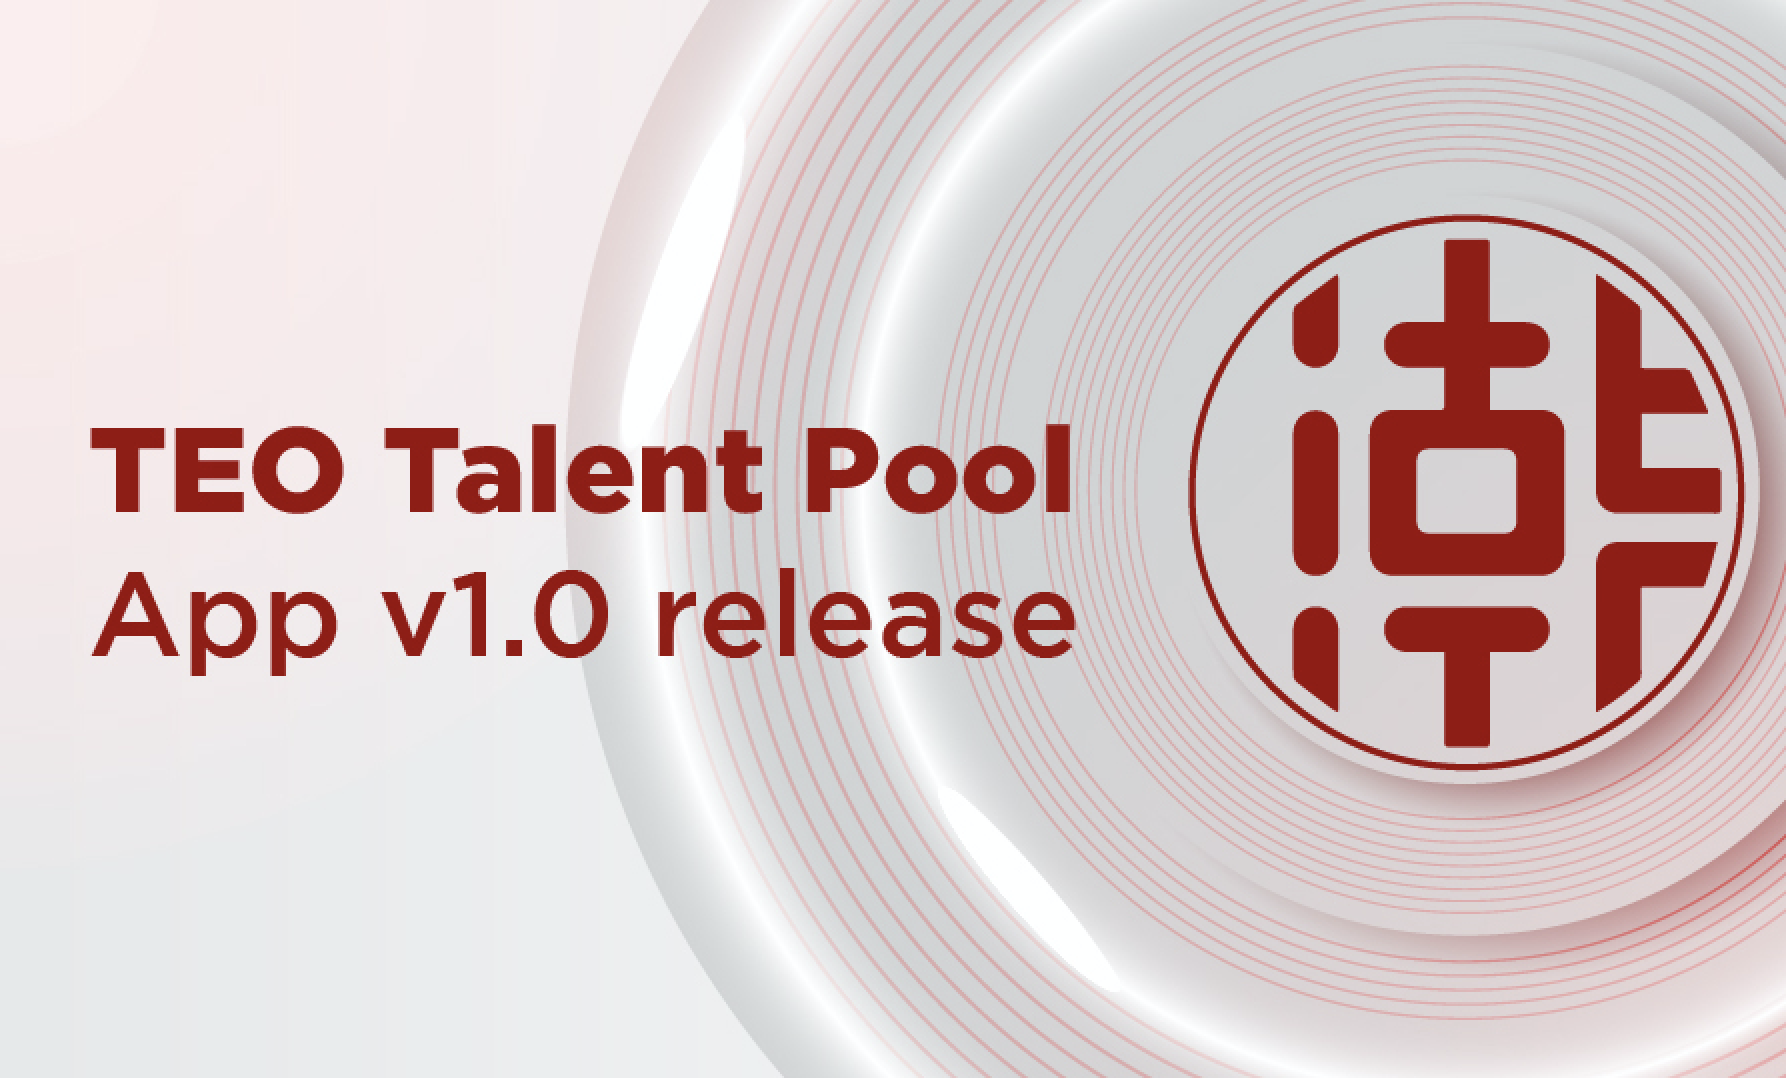 TEO Talent Pool App v1.0 launches on 20 November 2019